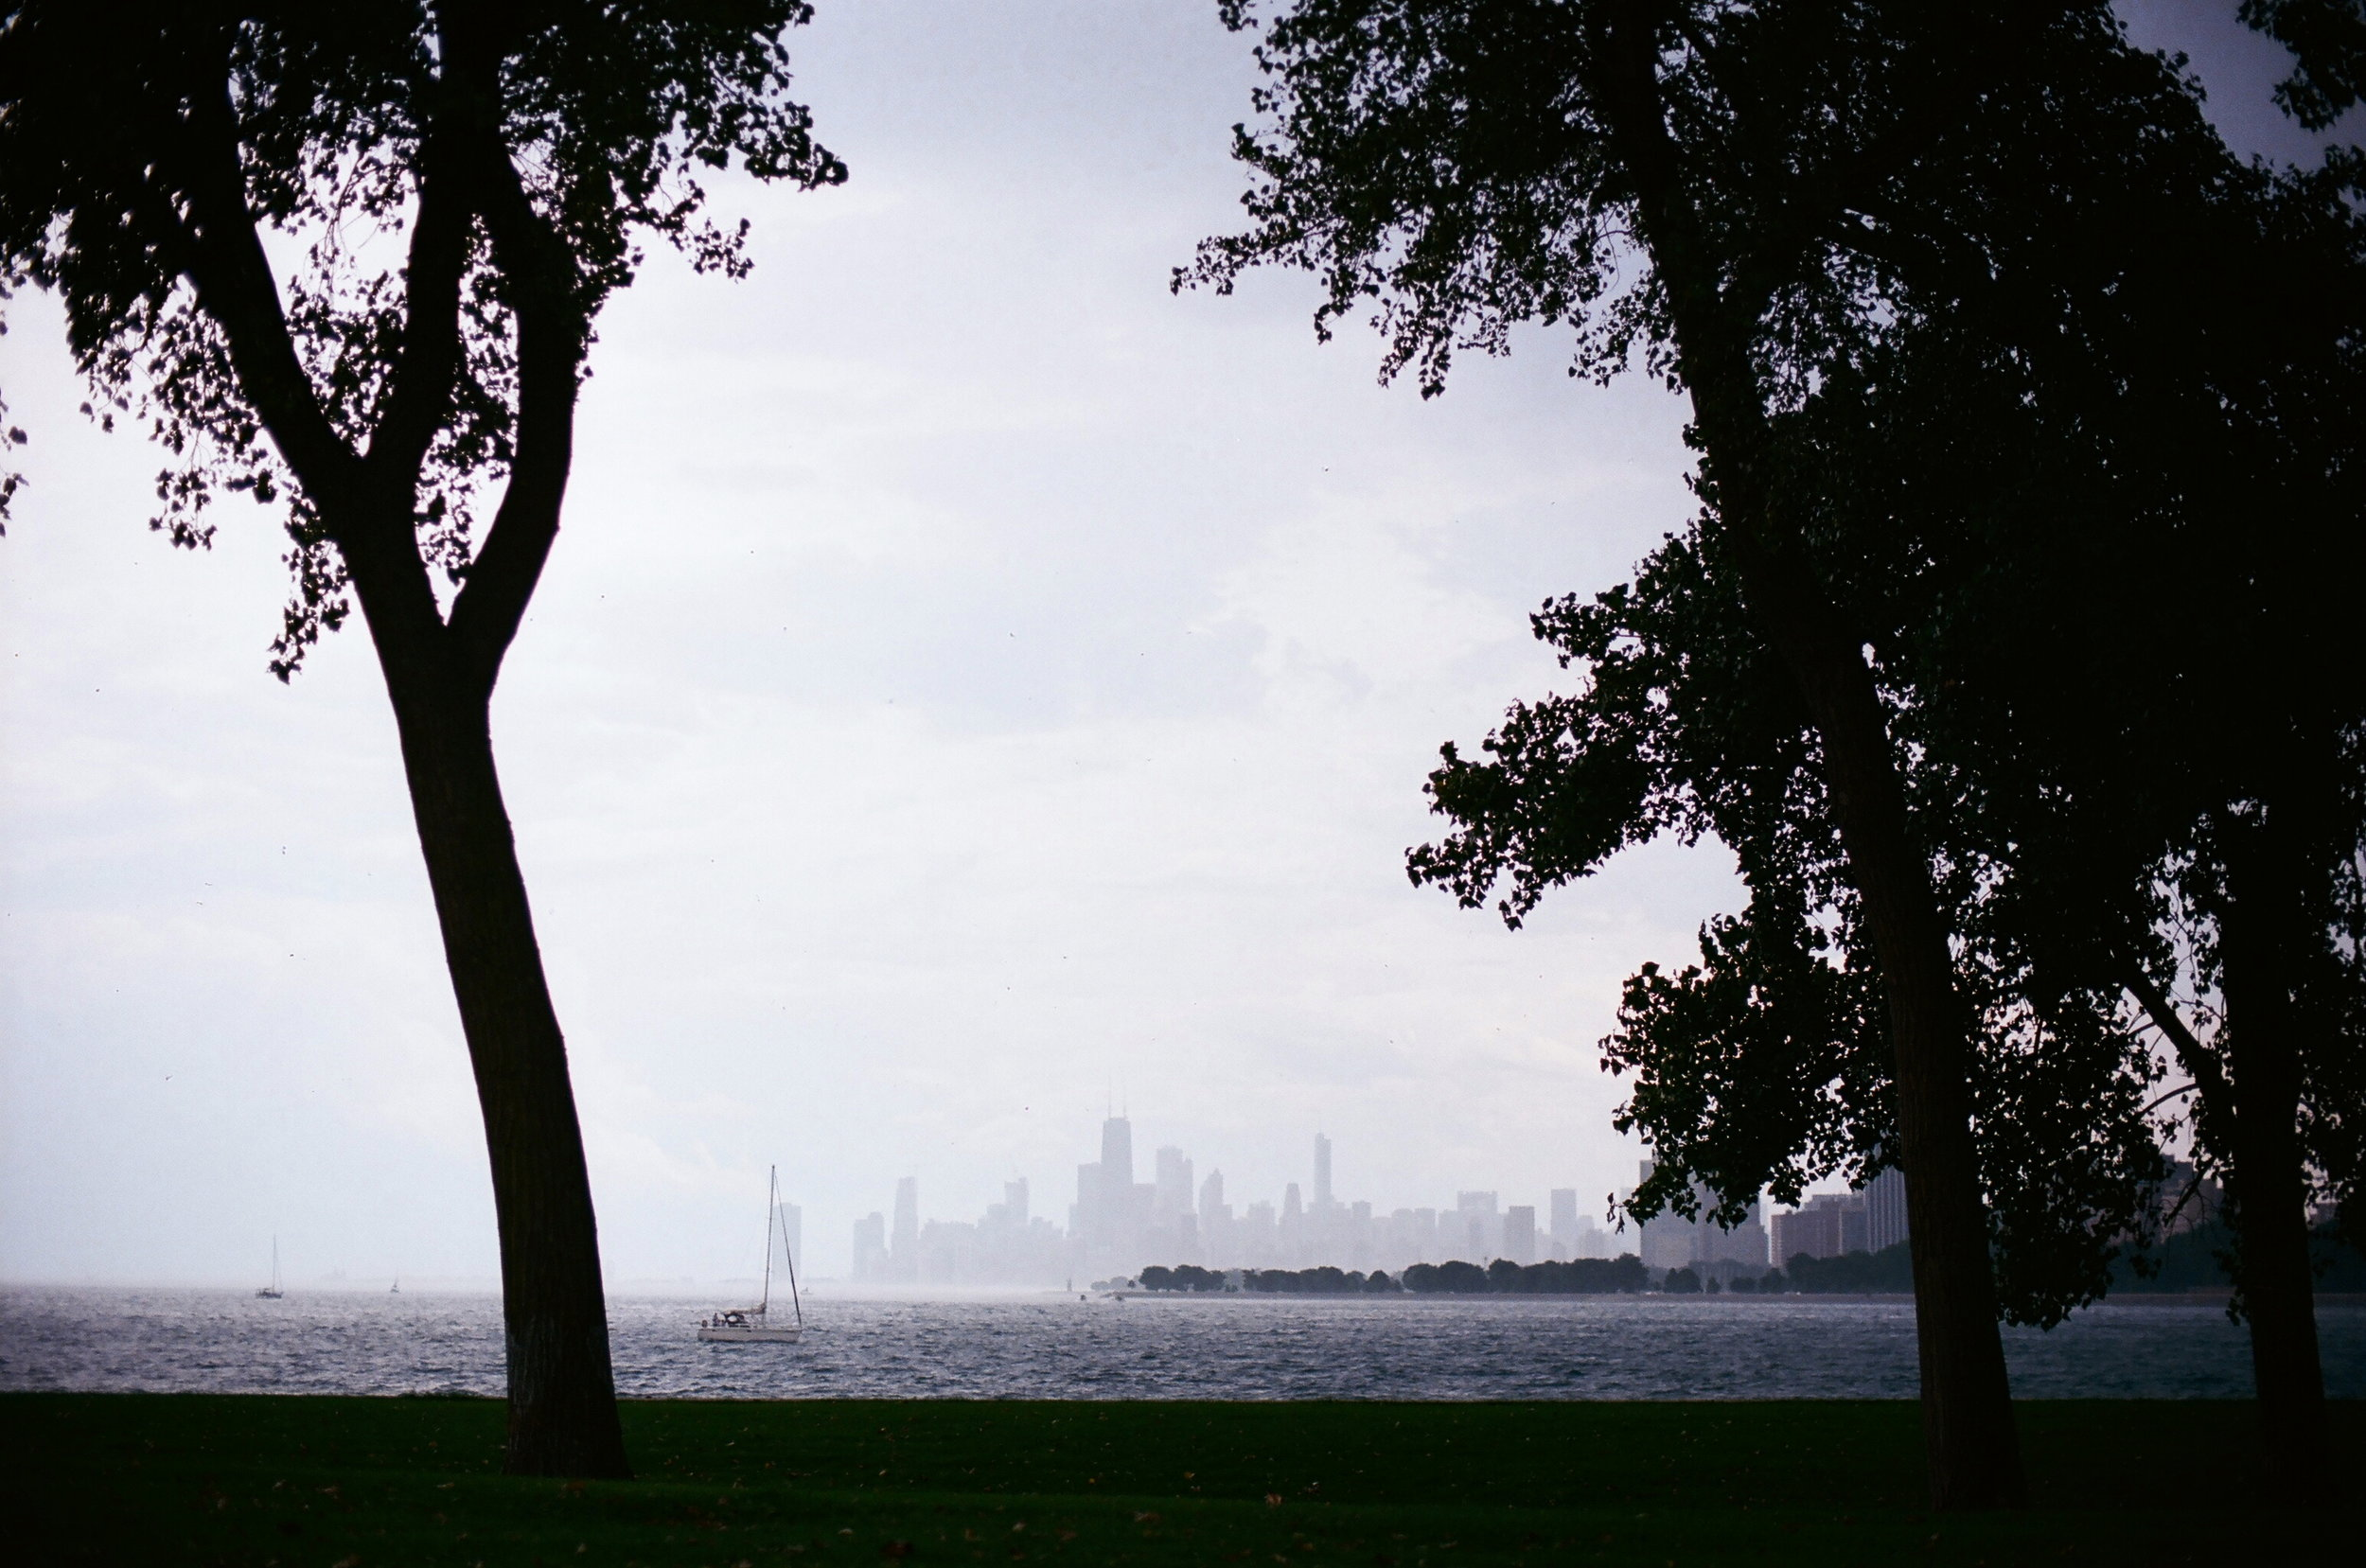 35mm Film Photo of Chicago Beach Lake Michigan by ZShare Photovisions